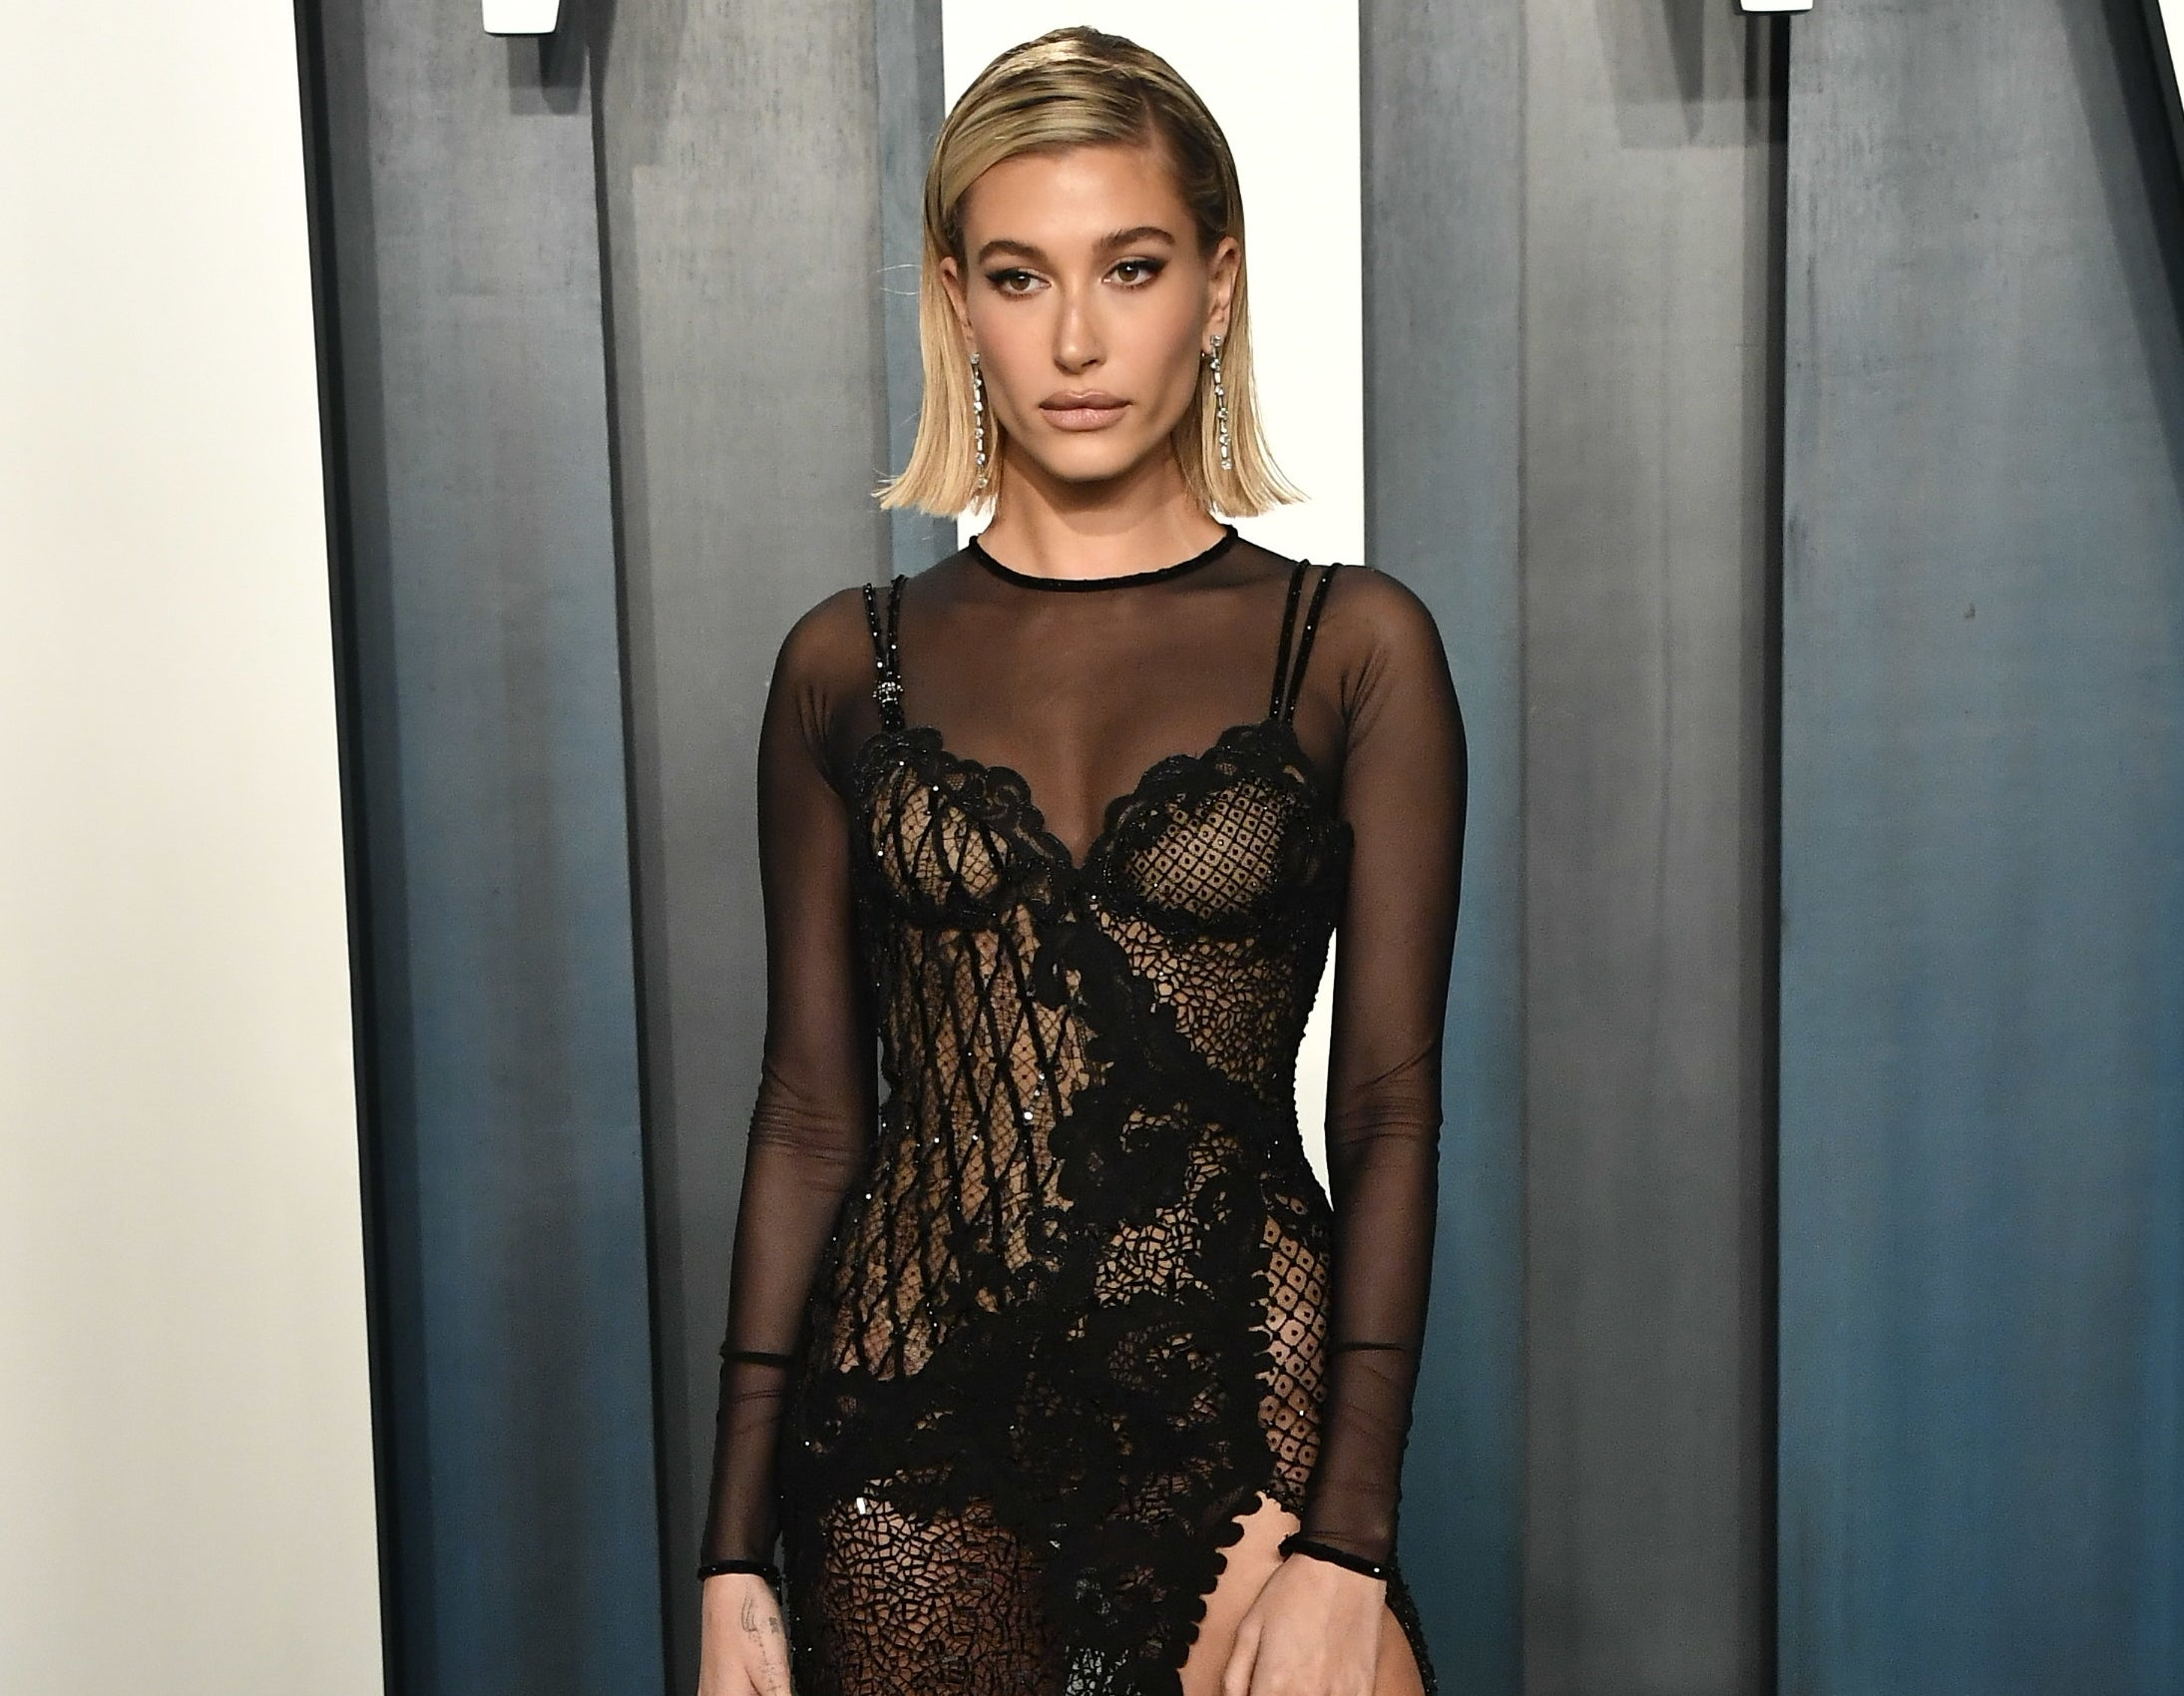 Hailey wears a sheer back dress to an event